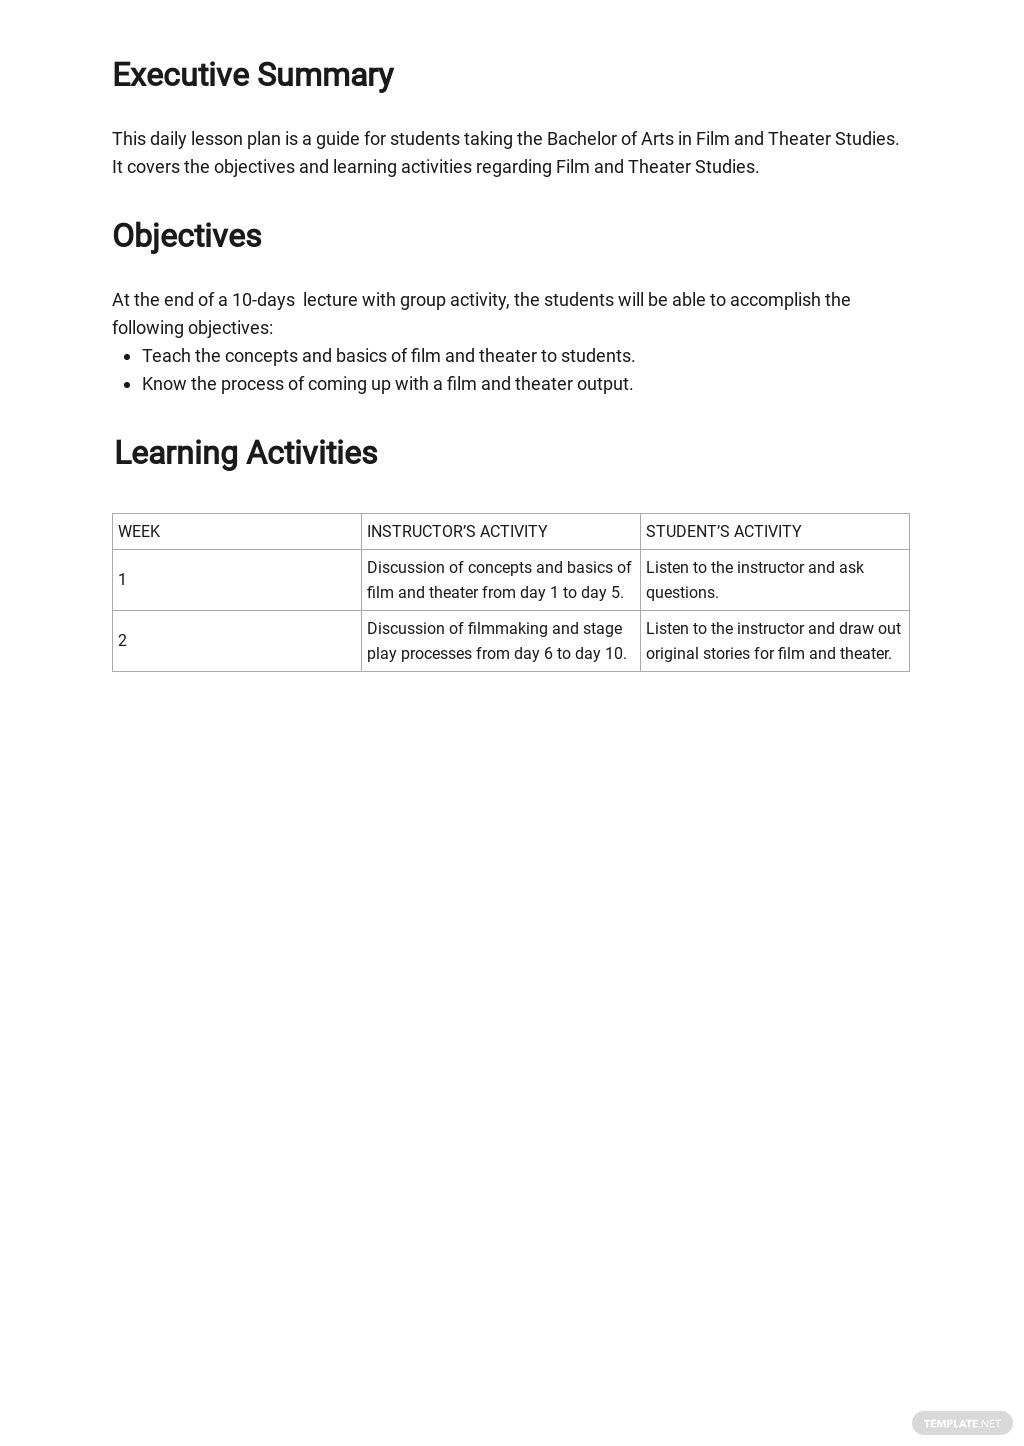 Basic Daily Lesson Plan Template 1.jpe